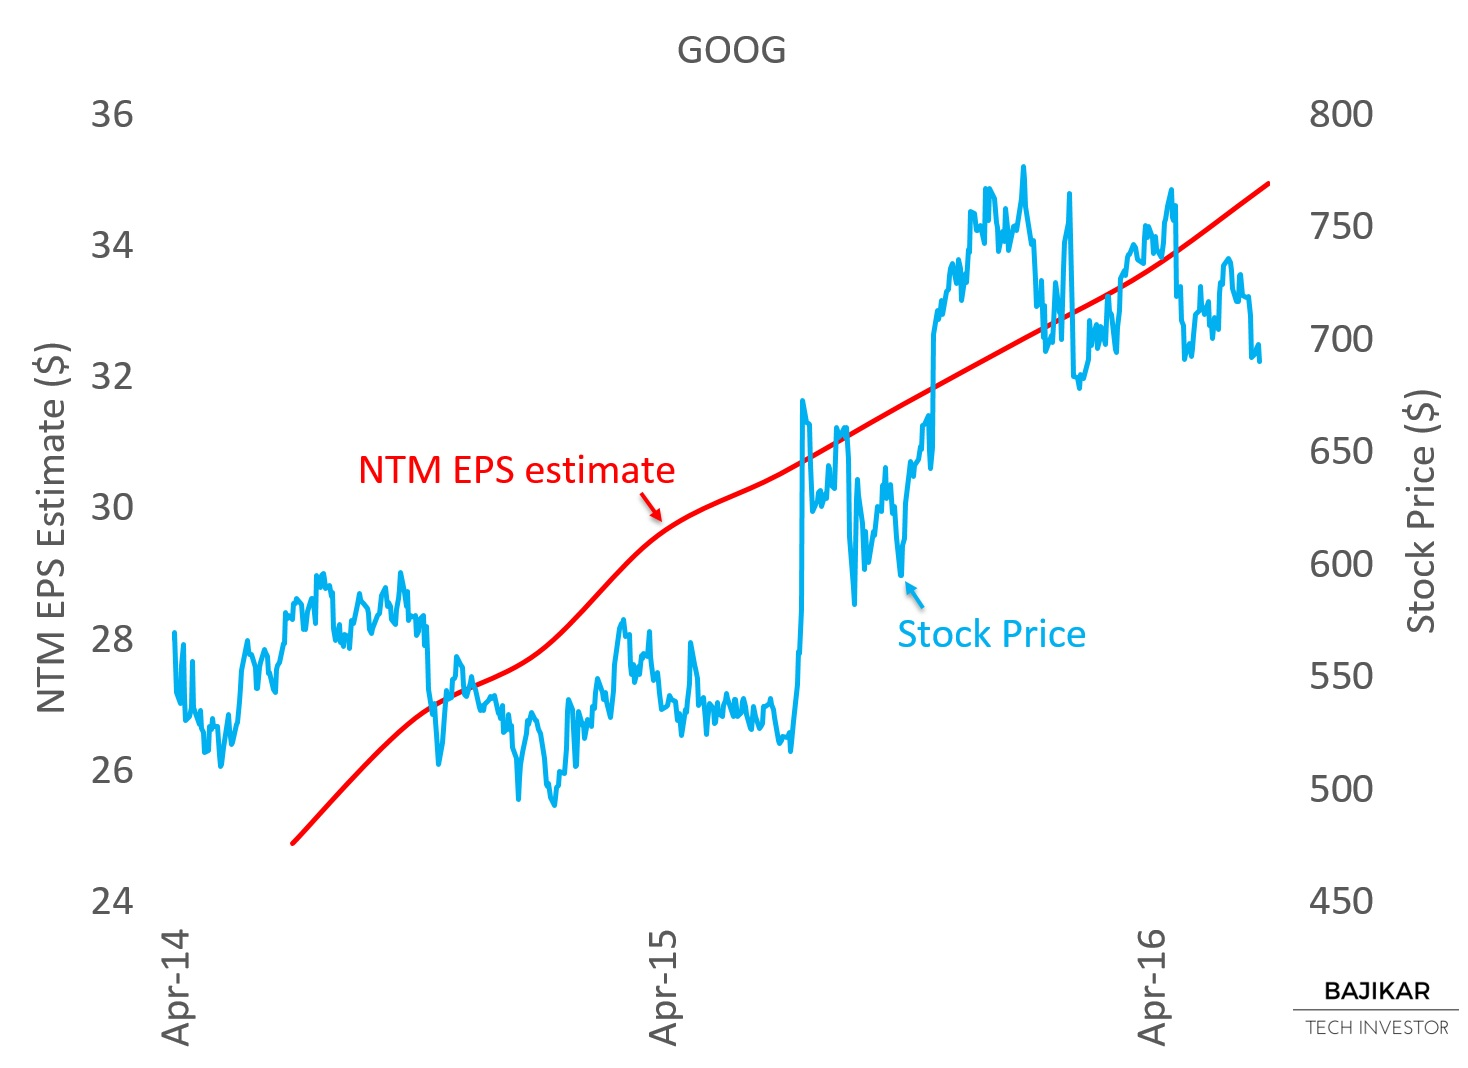 GOOG Stock Price vs. NTM EPS